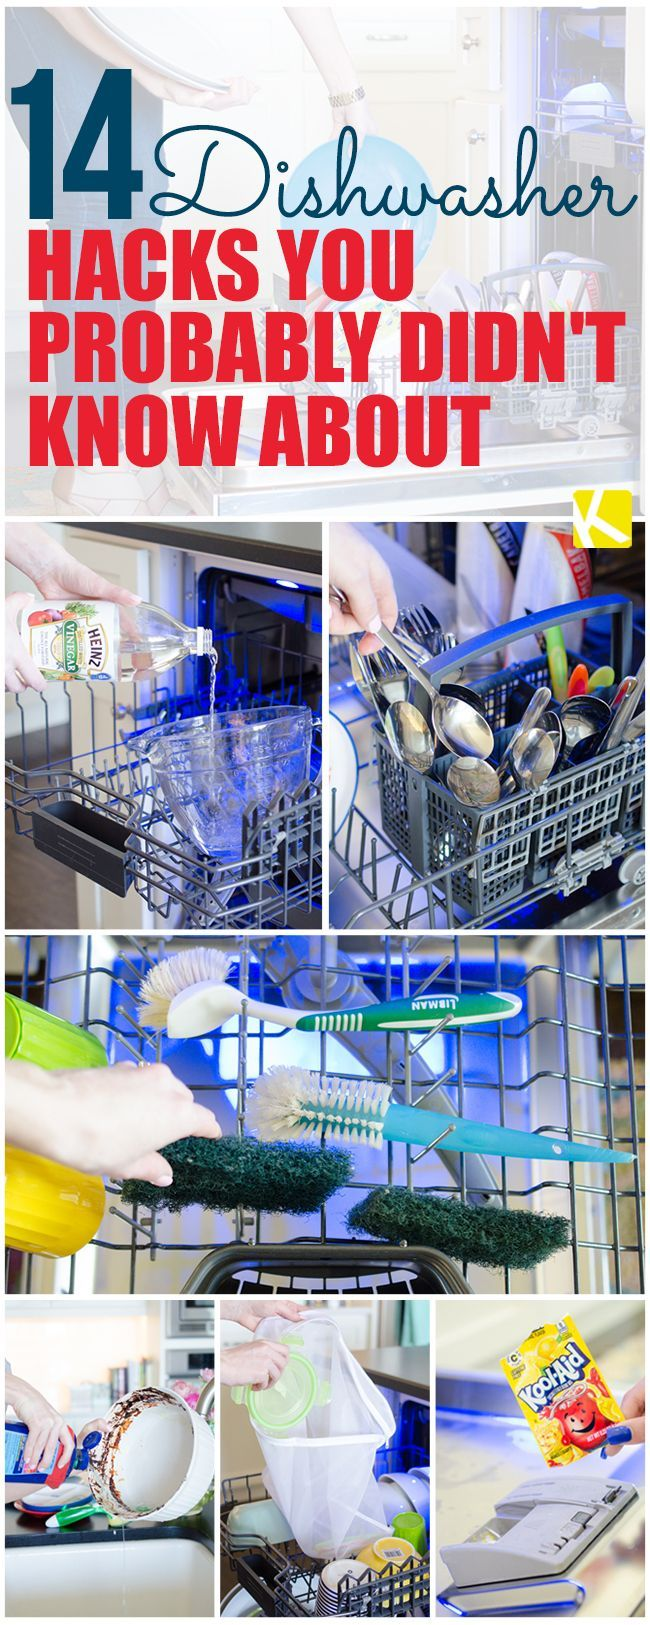 Unexpected Dishwasher Hacks To Clean Everything Dishwashers - 14 brilliant cleaning hacks that will change the way you clean your home